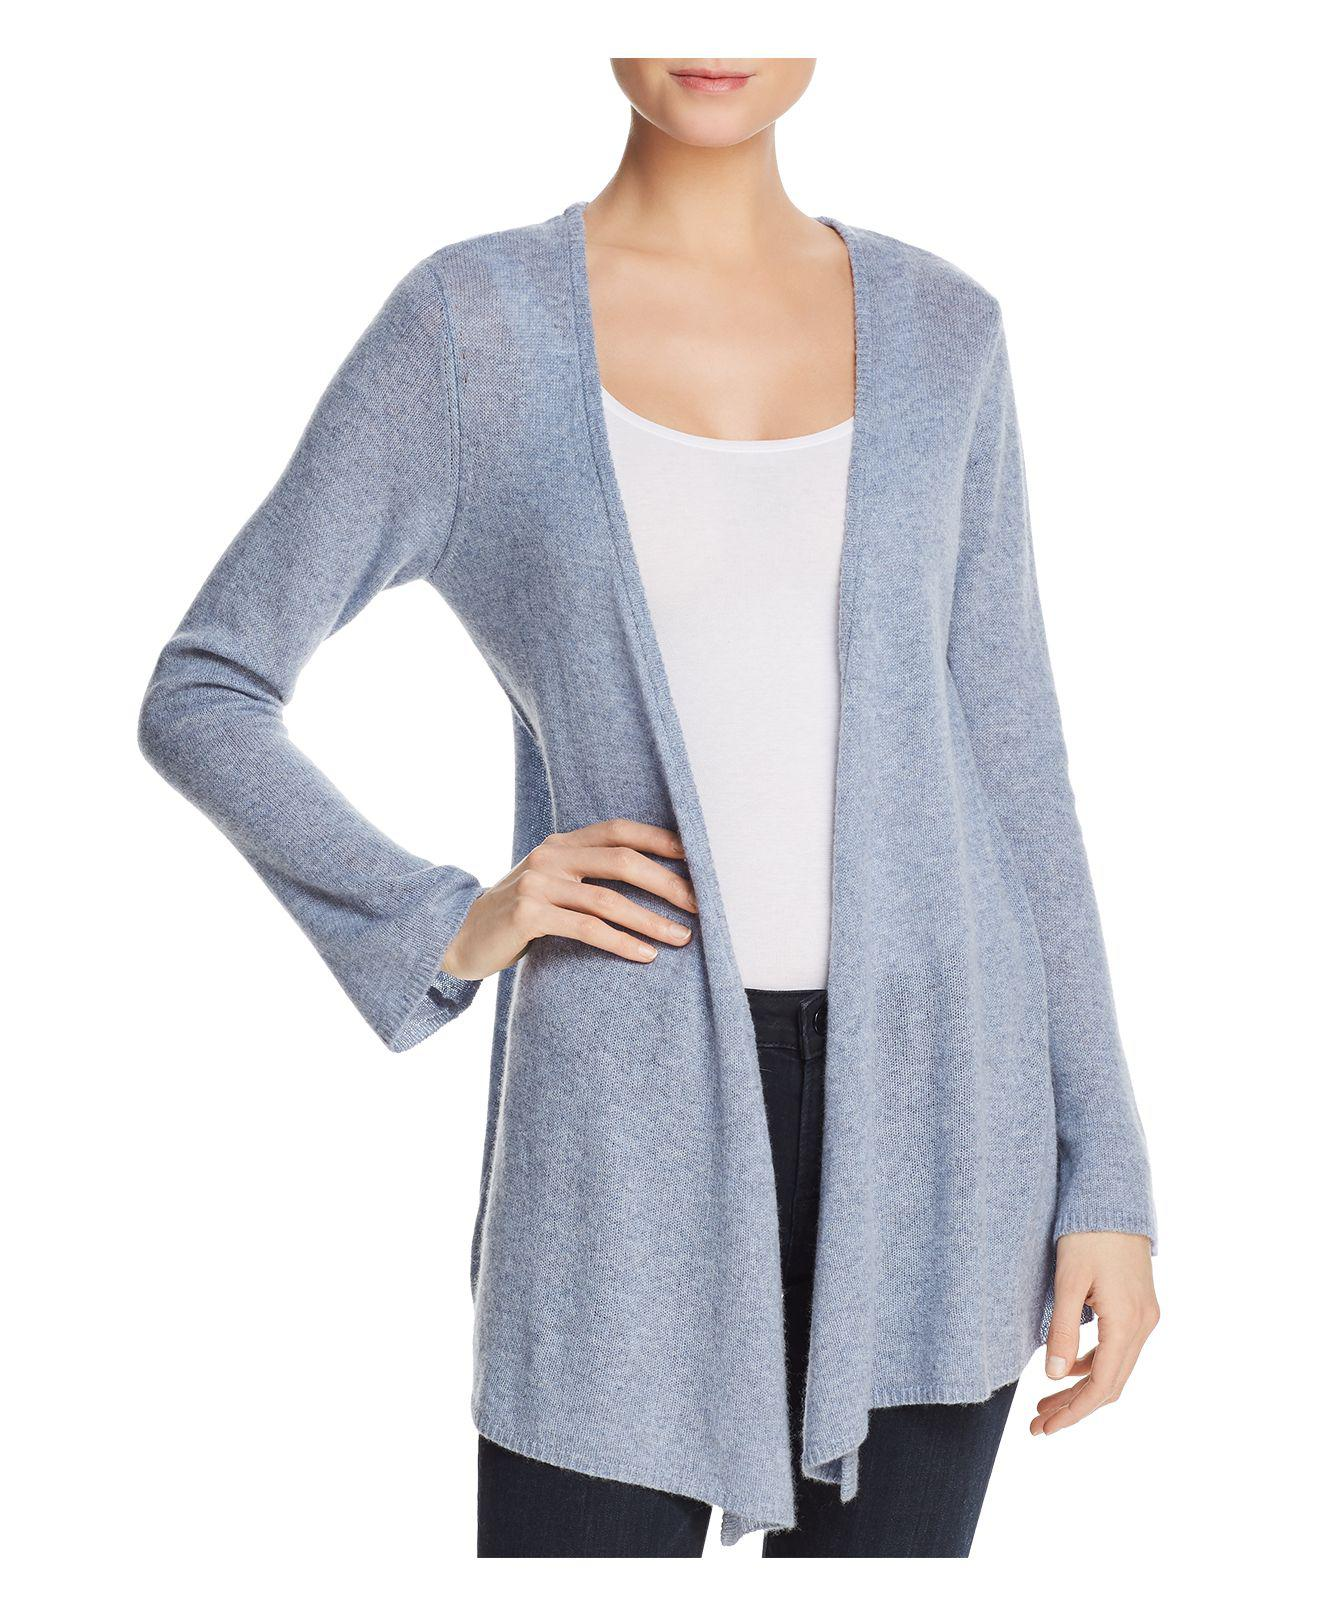 Minnie rose Cashmere Duster Cardigan in Blue | Lyst